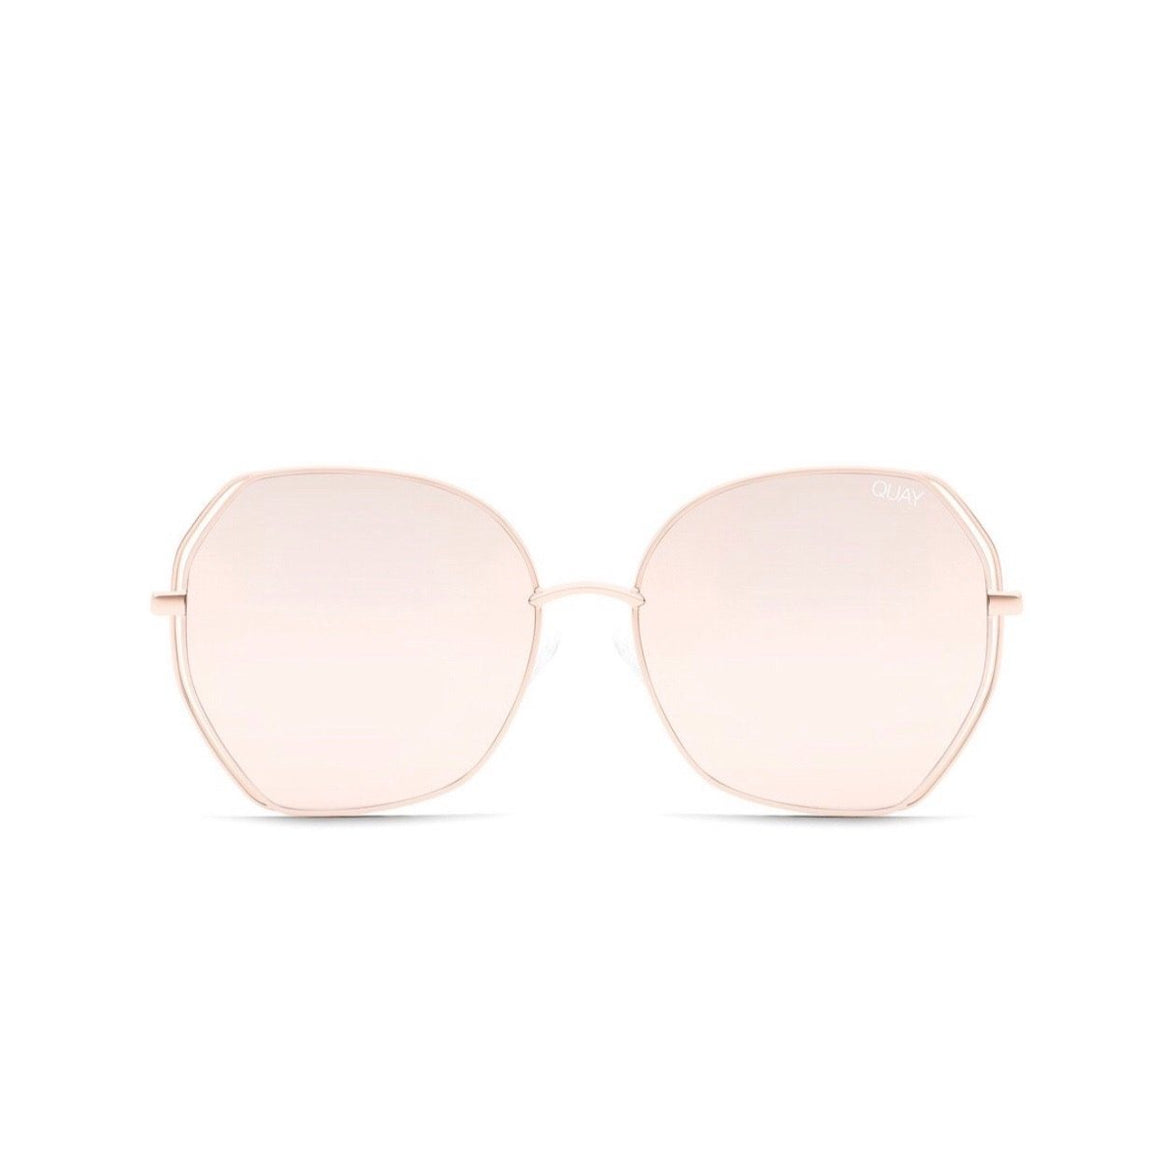 Quay - Big Love Sunglasses - Rose/Rose Sunglasses Quay